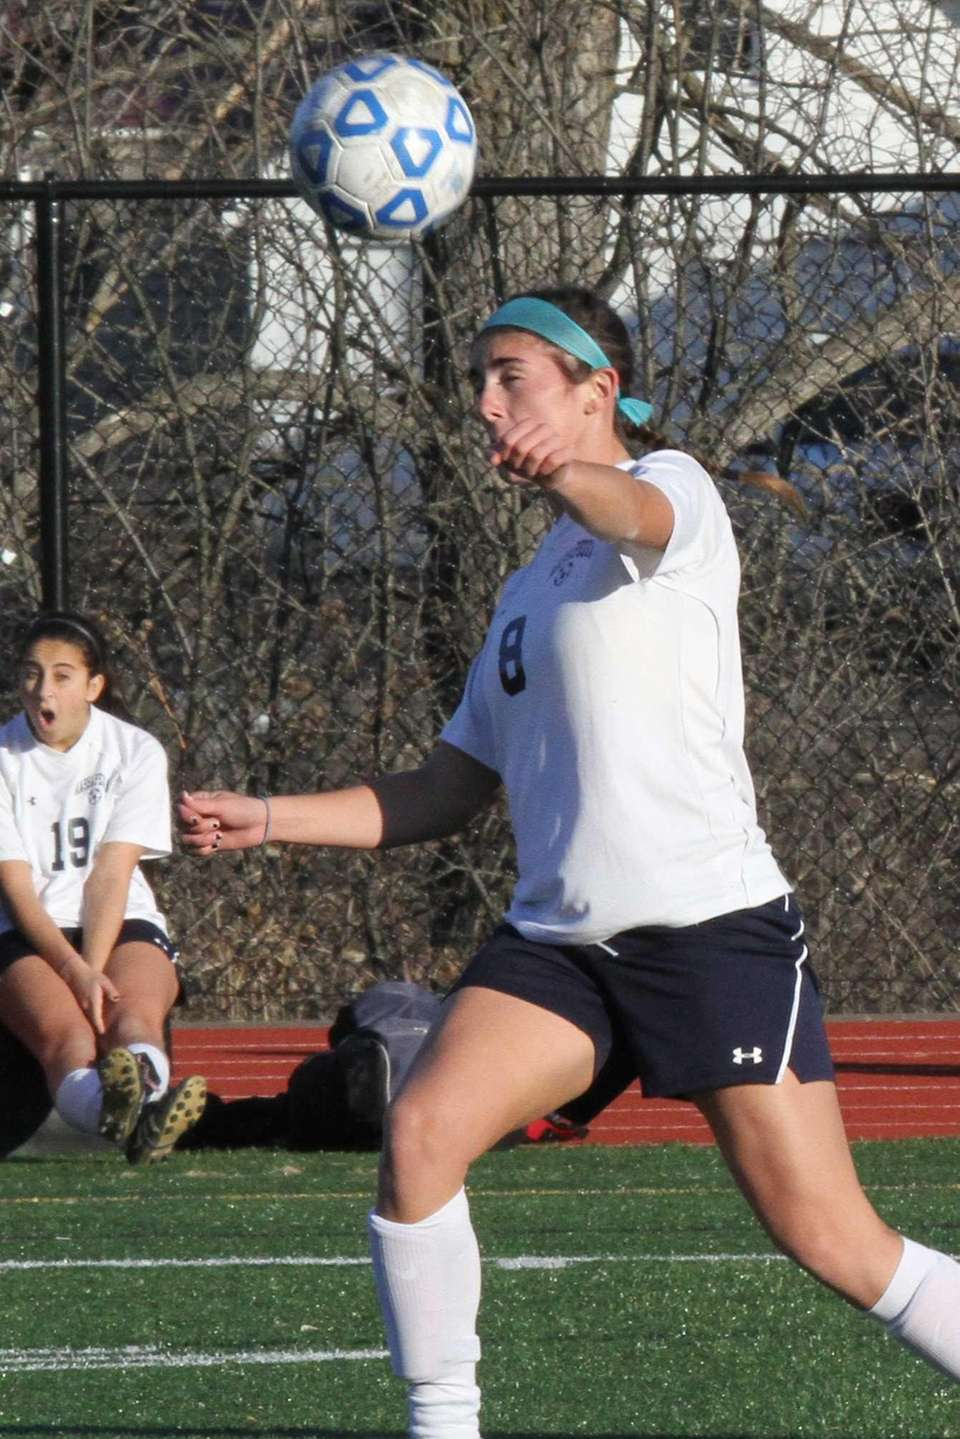 Massapequa's Alyssa Iannuzzi heads the ball against CNS.